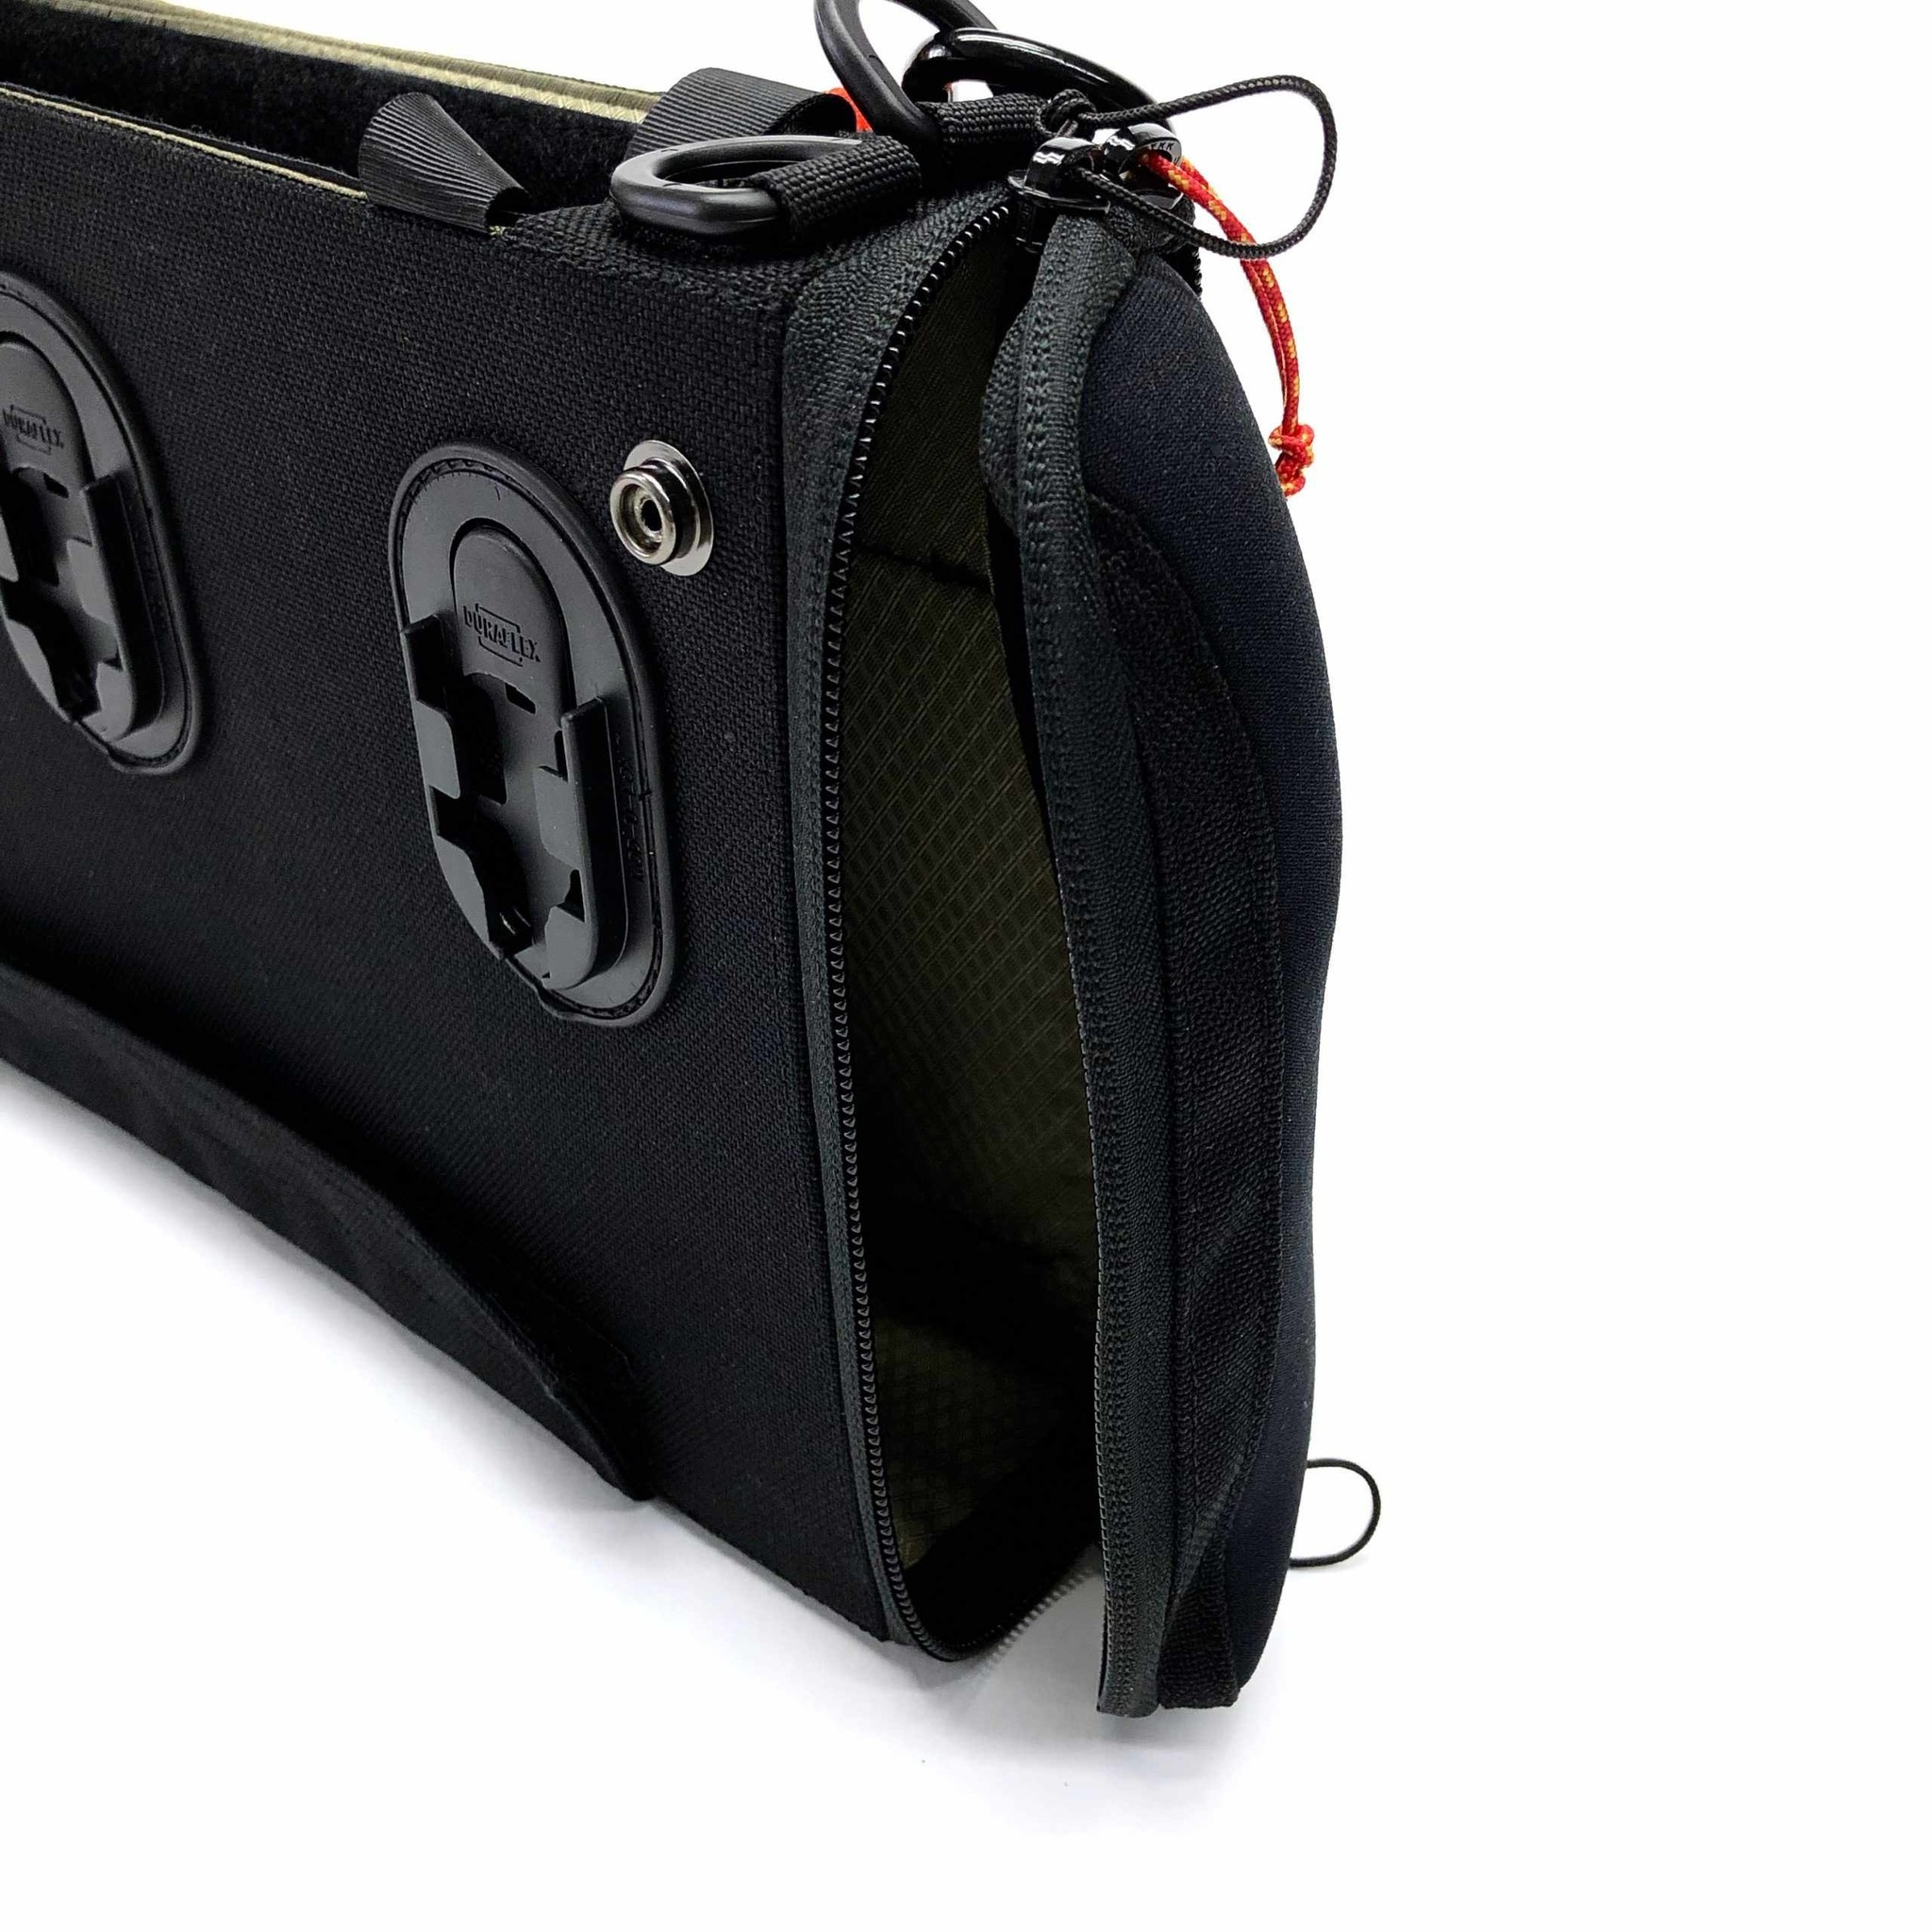 Protogear Protogear – Pro-L Sound Bag Large